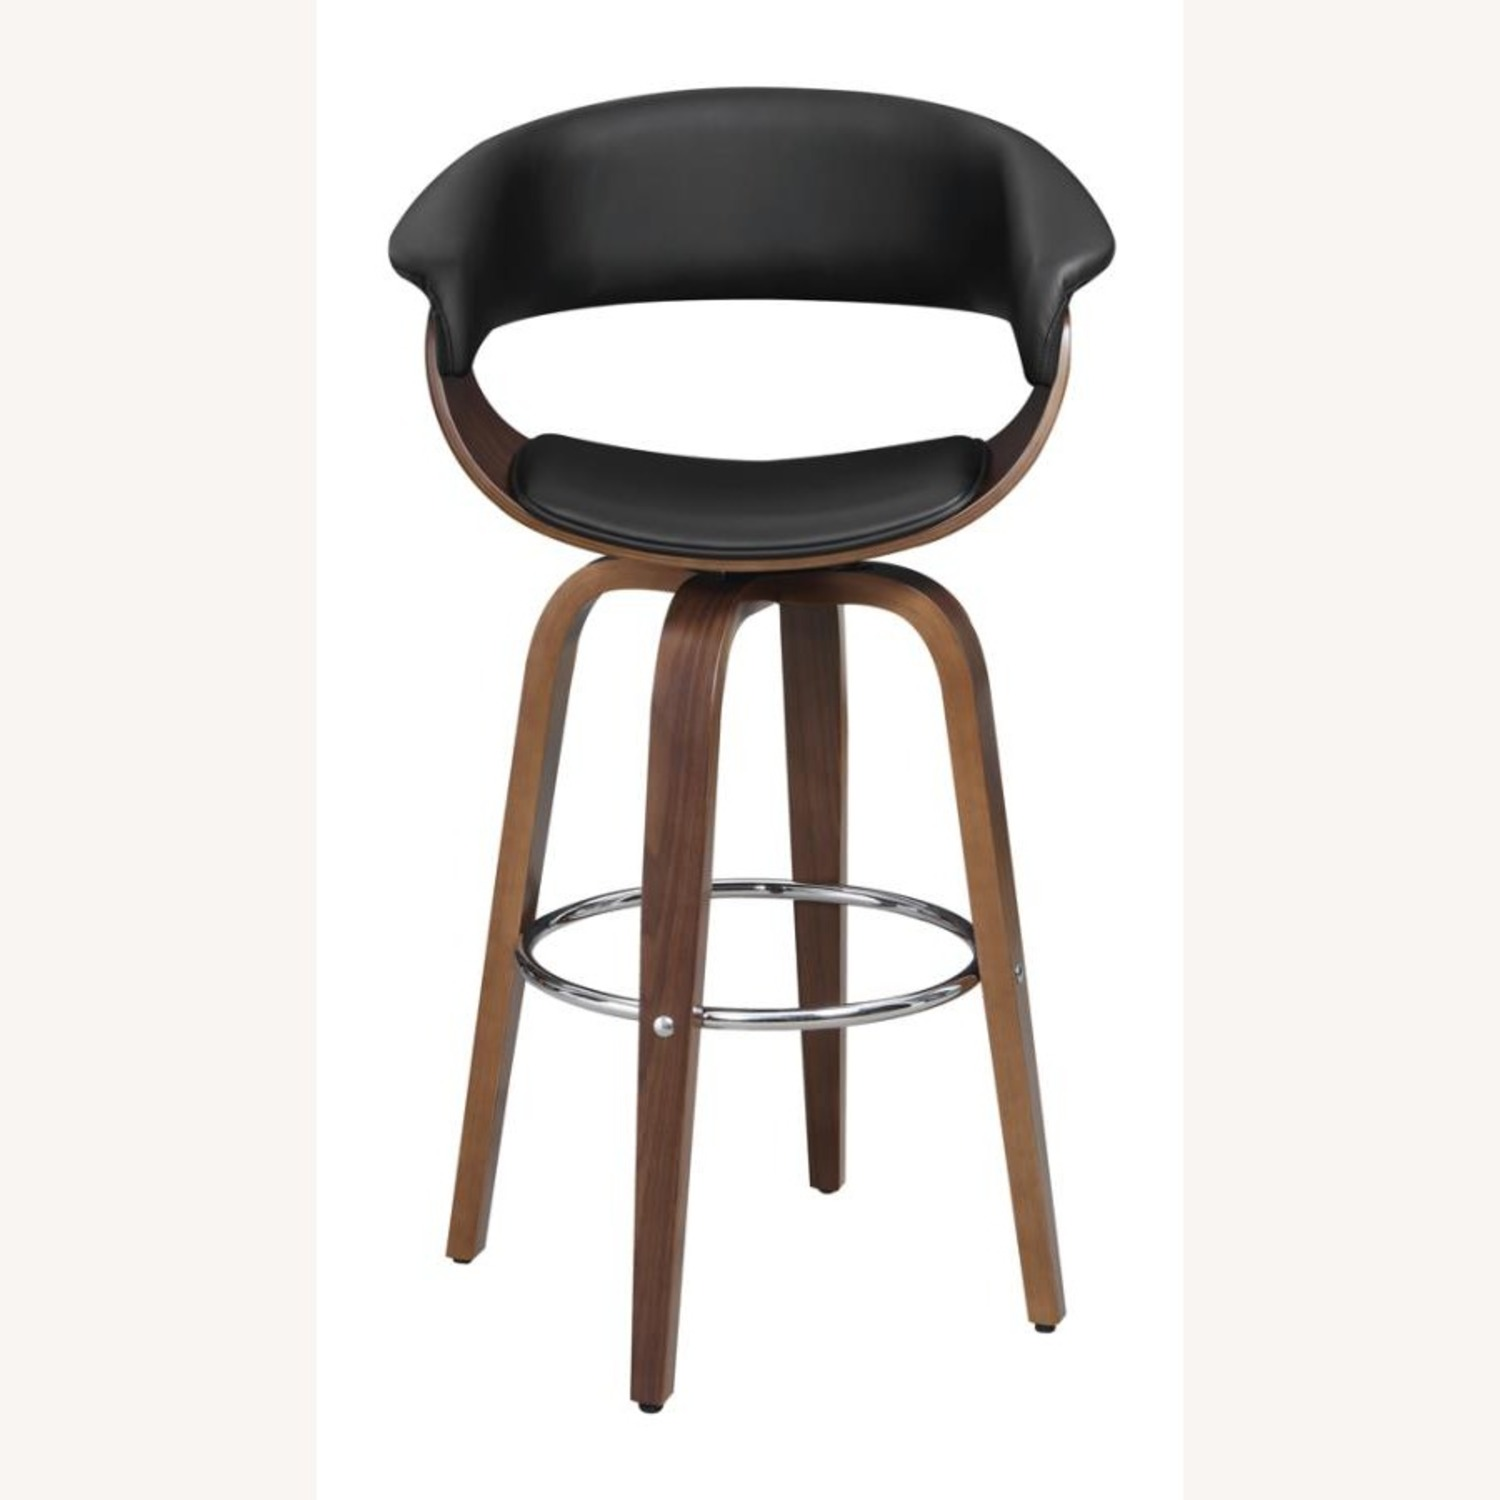 Swivel Bar Stool In Black Faux Leather Upholstery - image-1